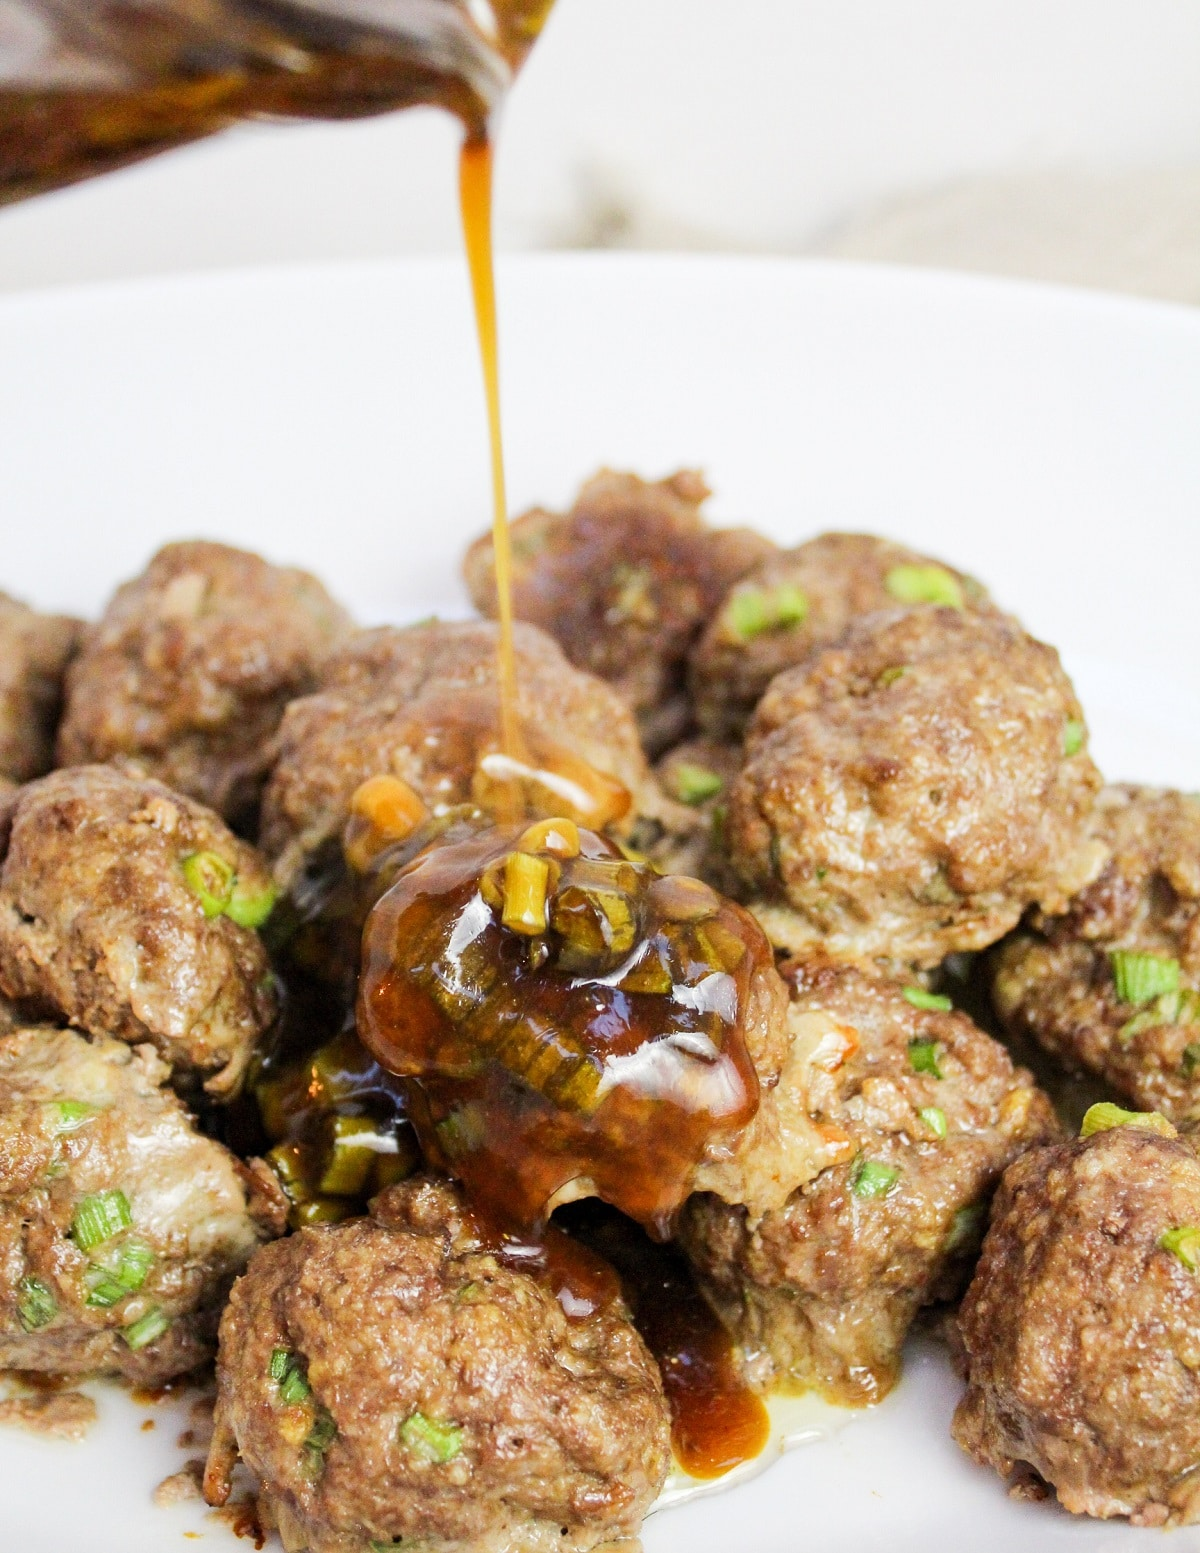 Meatballs with sauce on top